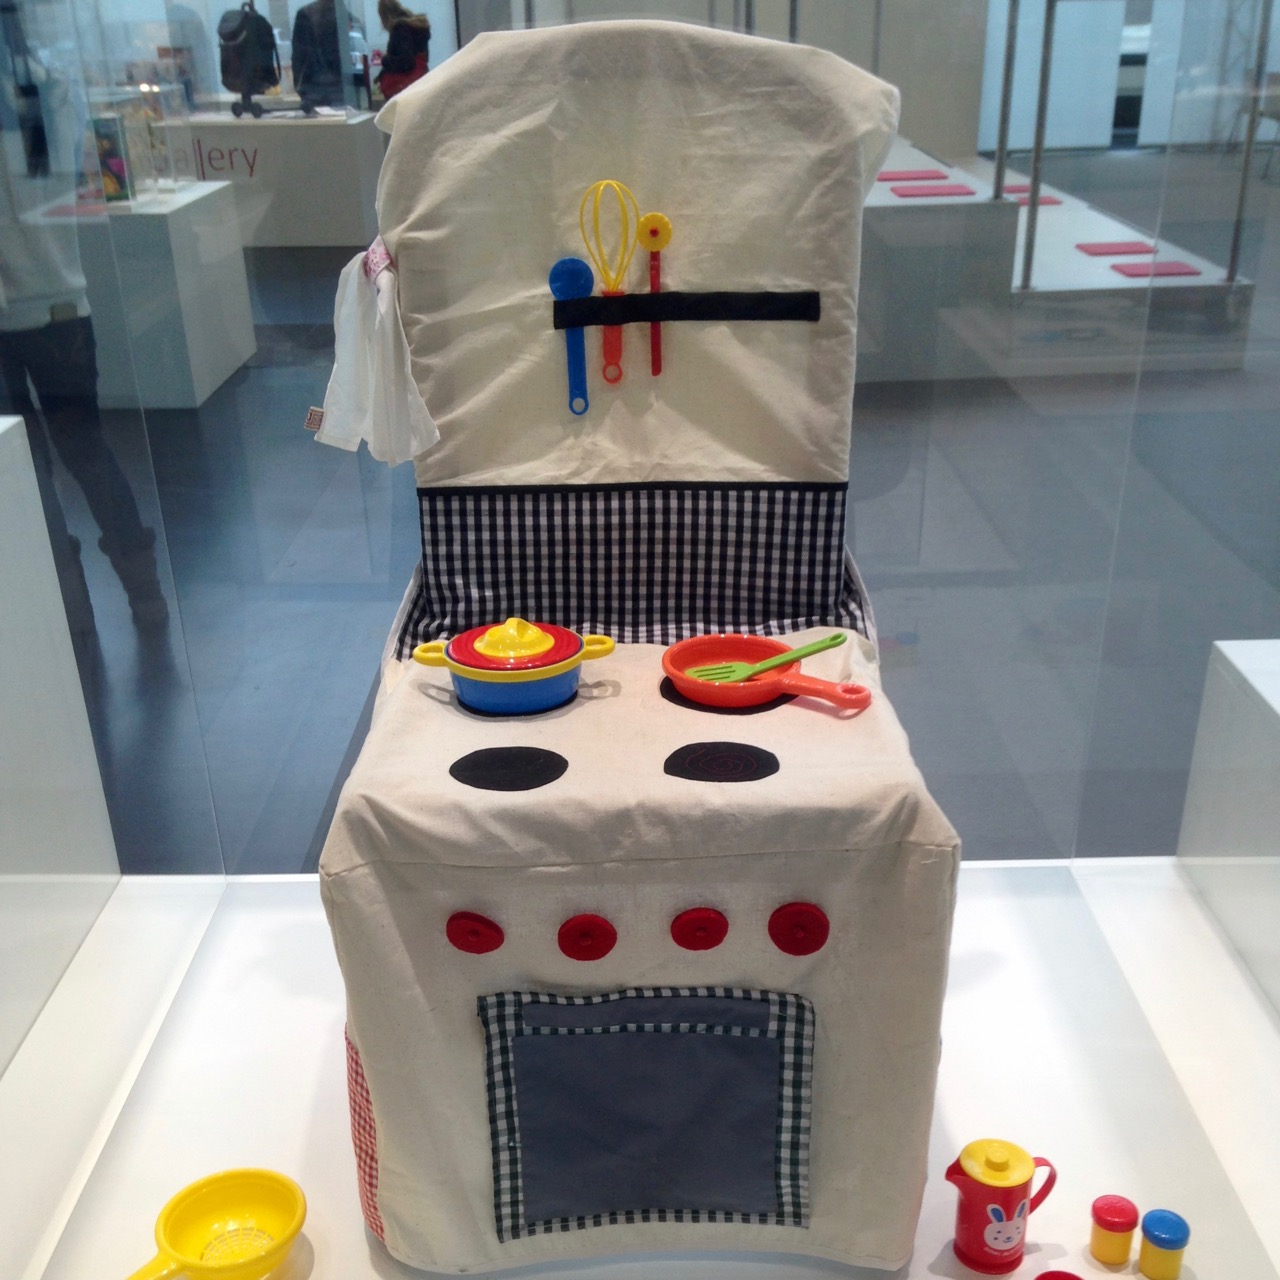 In the Trend Gallery, a kitchen play area created from a chair